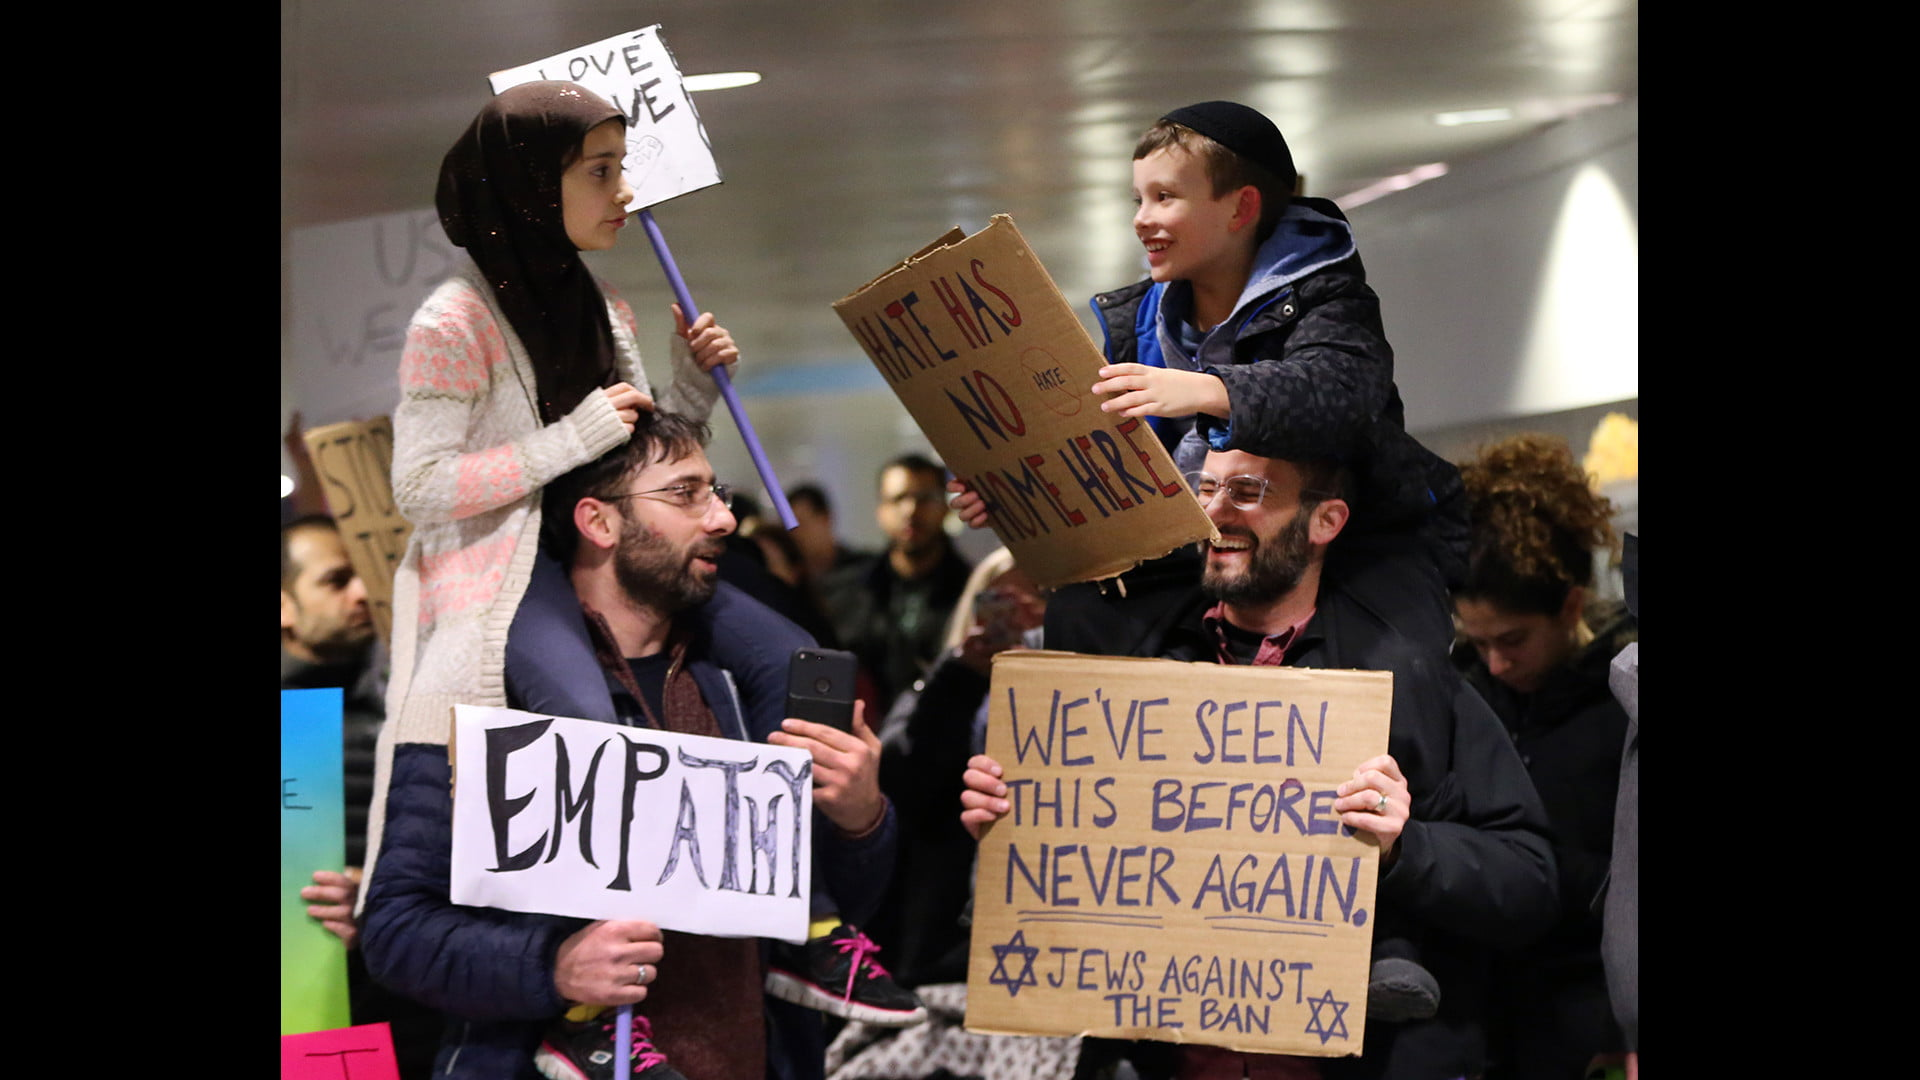 Meryem Yildirim, 7, left, sitting on the shoulders of her father, Fatih, of Schaumburg, and Adin Bendat-Appell, 9, sitting on the shoulders of his father, Rabbi Jordan Bendat-Apell, of Deerfield, protest President Donald Trump's immigration and refugee order at O'Hare International Airport on Jan 30, 2017. (Nuccio DiNuzzo / Chicago Tribune)